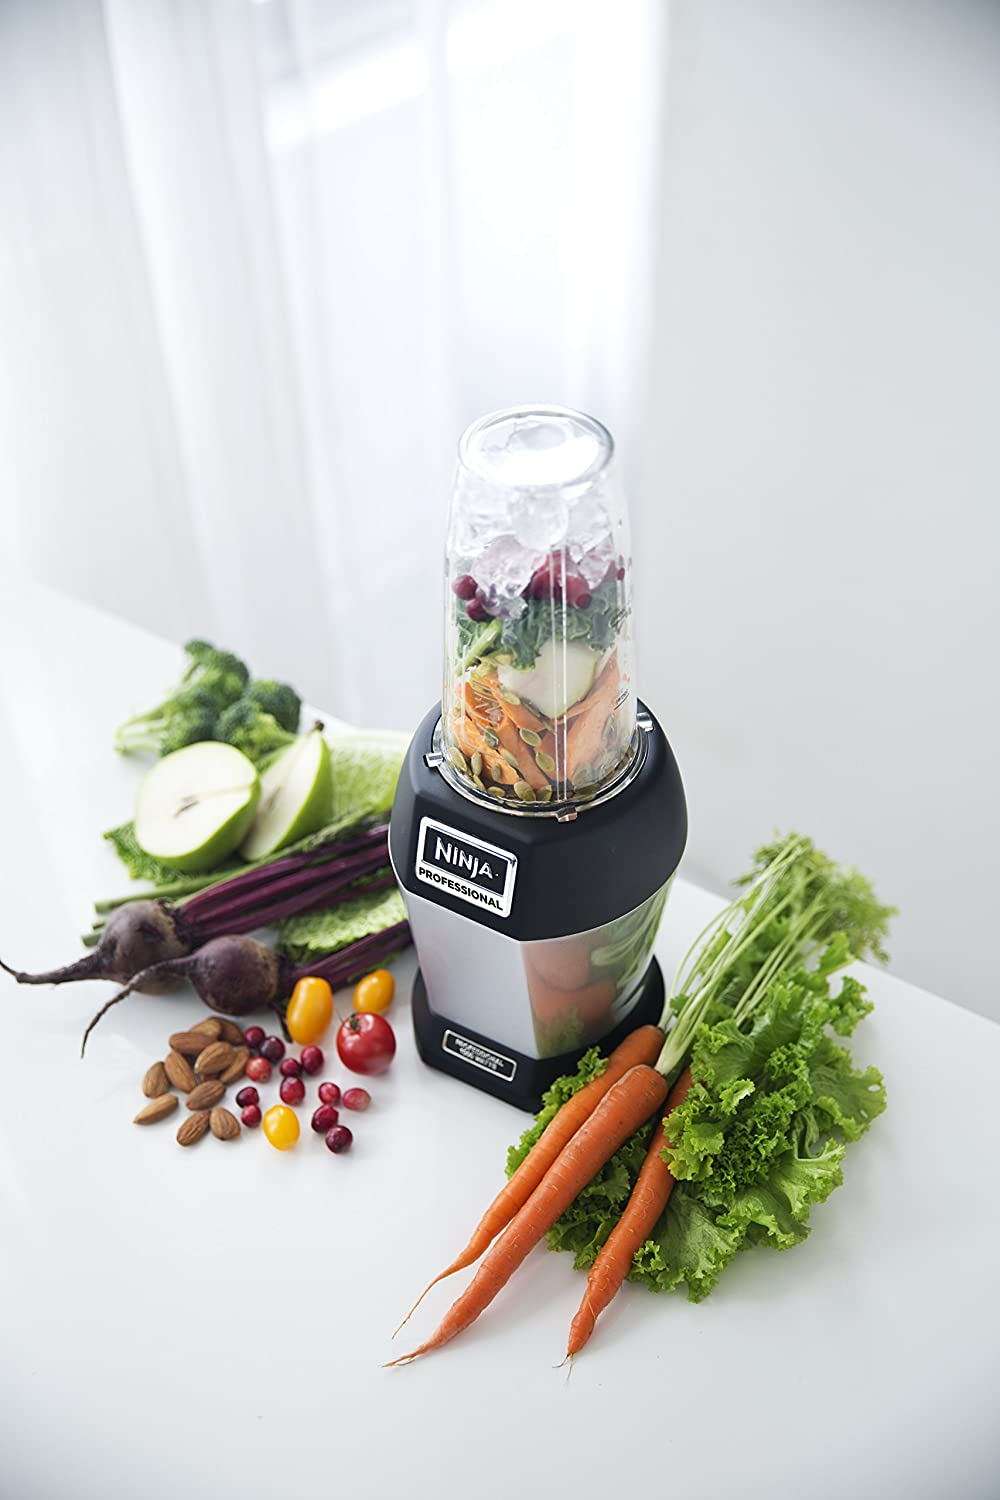 Ninja Nutri Pro Compact Personal Blender, with 18 Oz. and 24 Oz. To Go Cups, in a Black and Silver Finish